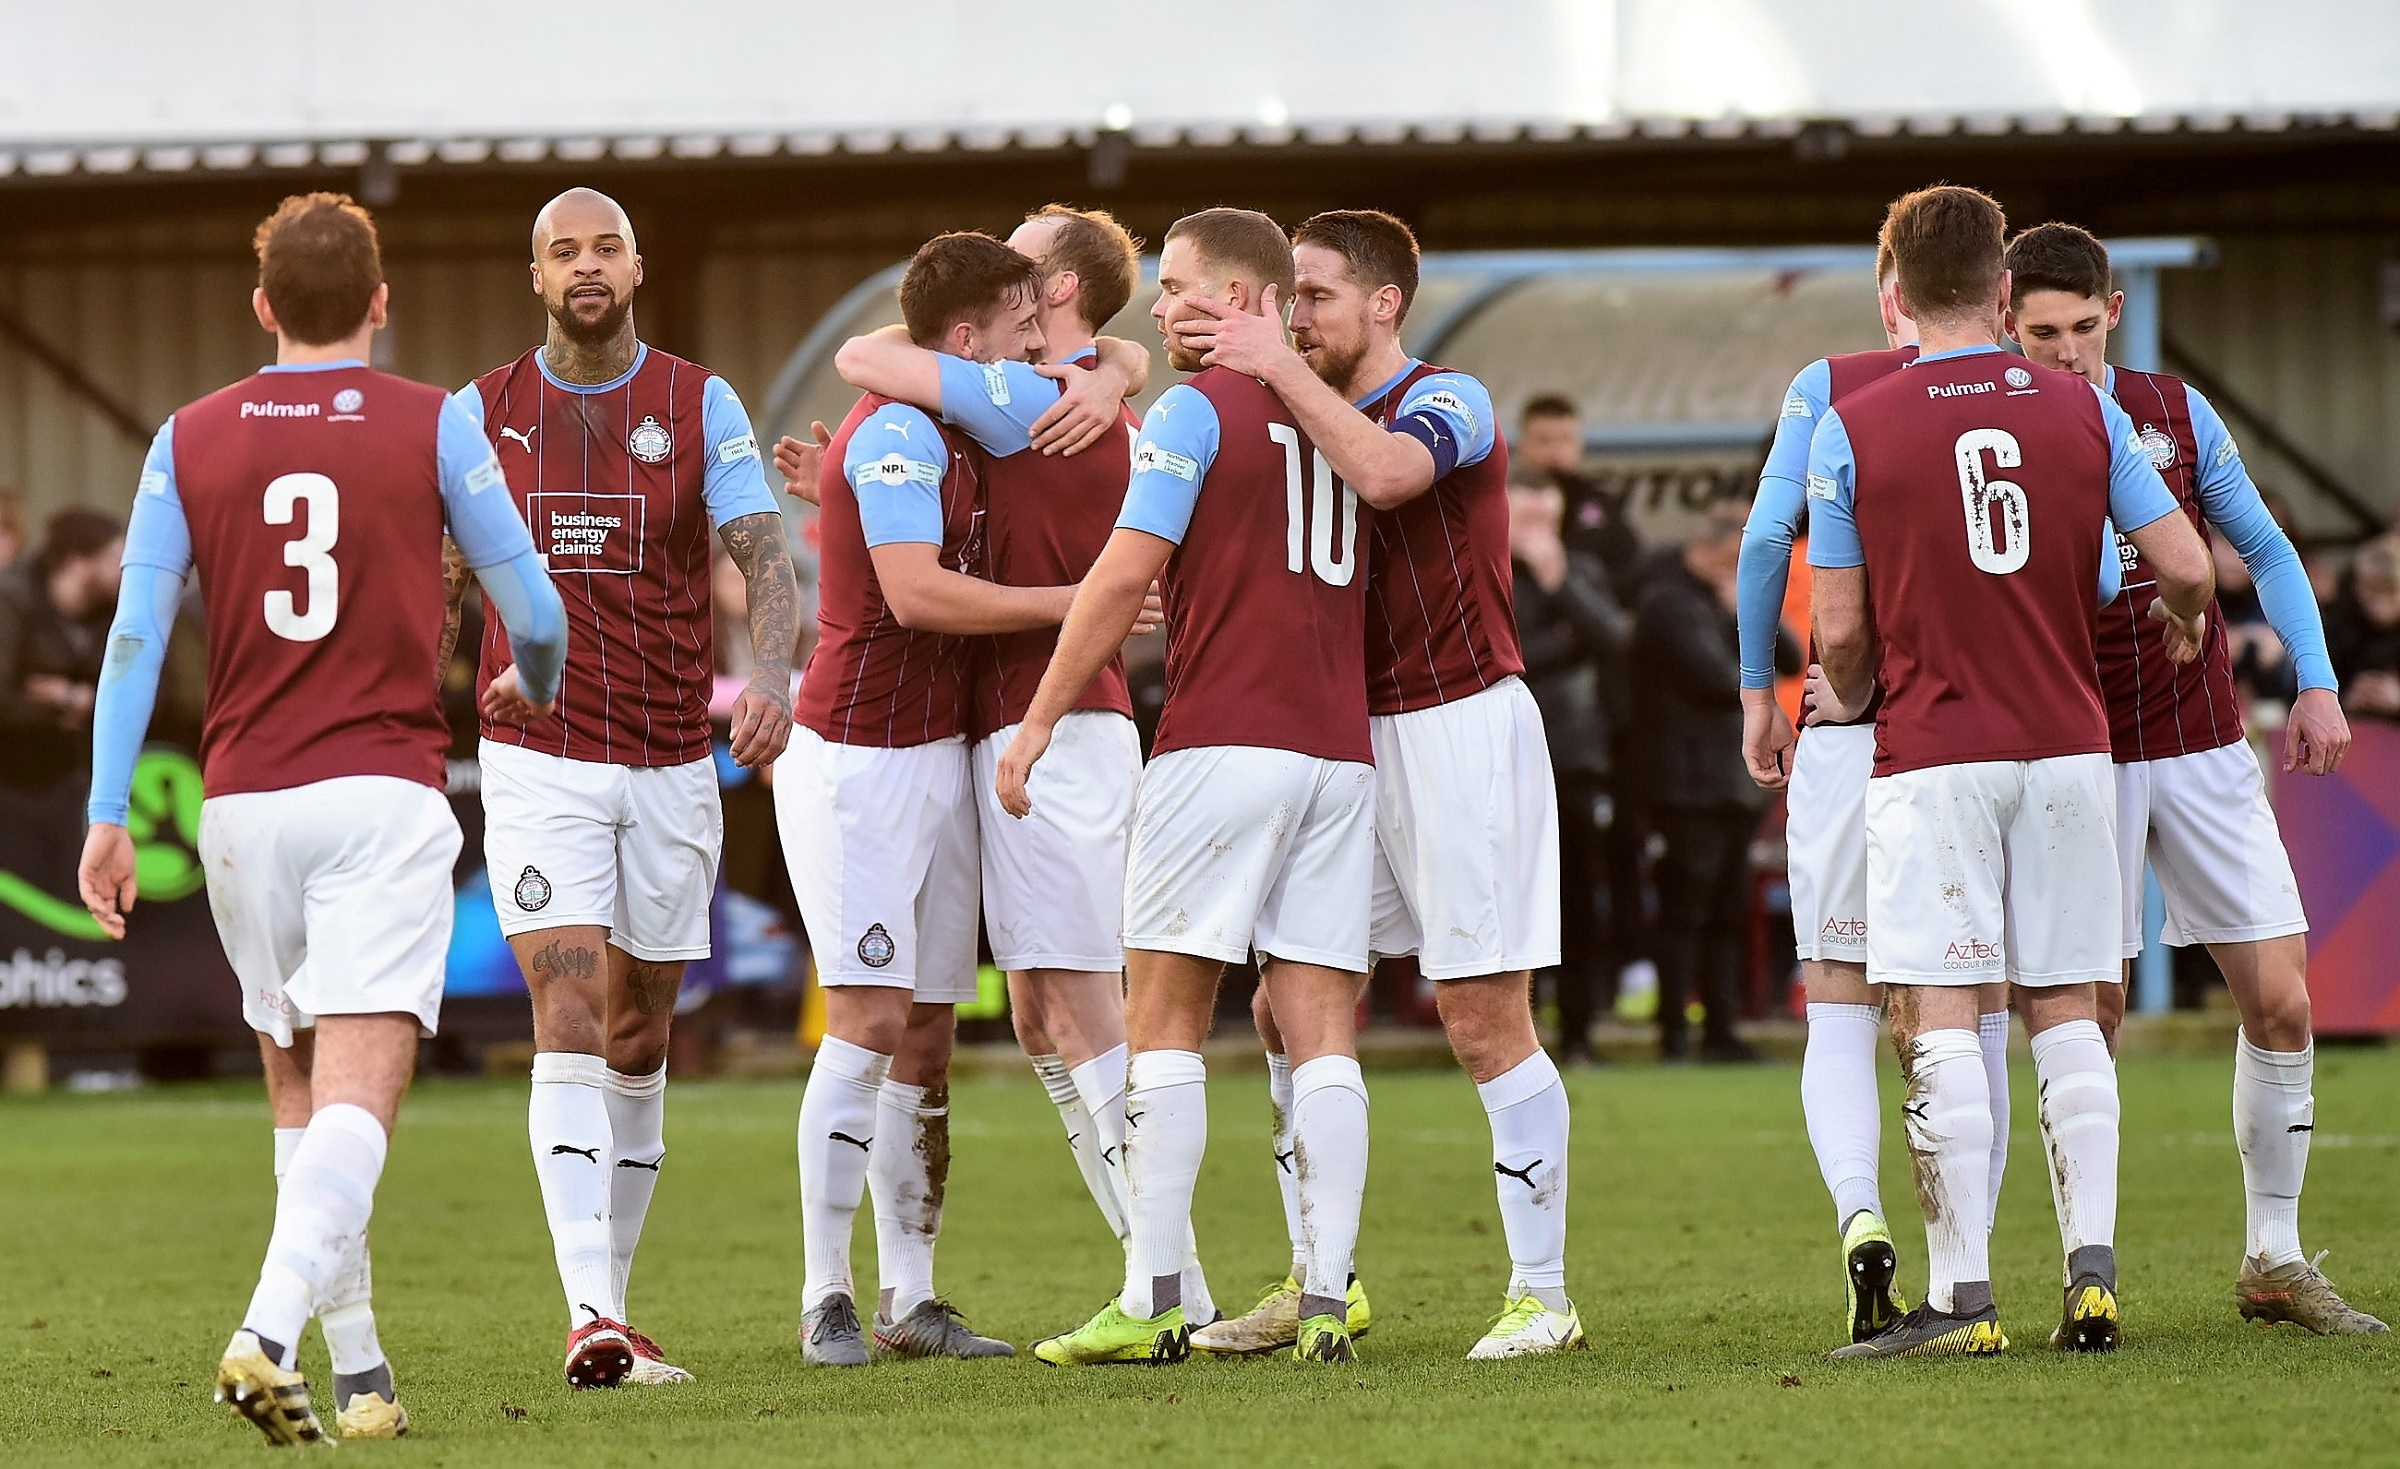 Match Preview: South Shields vs Buxton, BetVictor Northern Premier Division